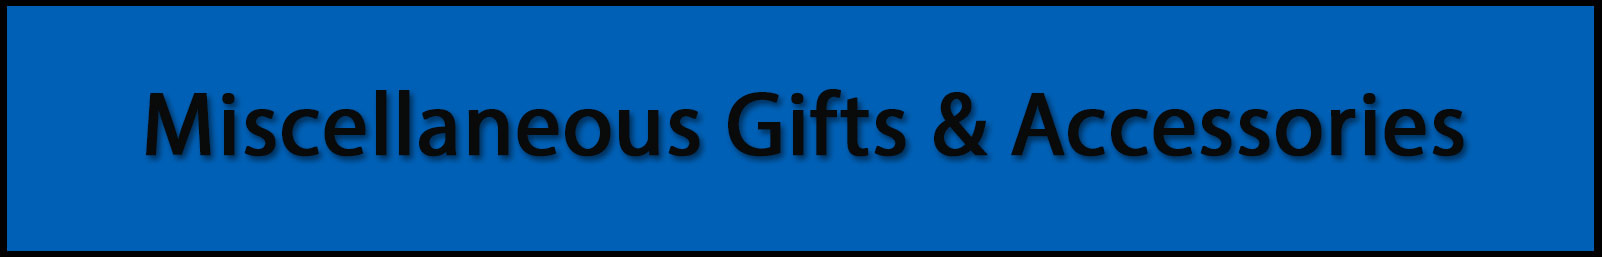 Miscellaneous Gifts & Accessories